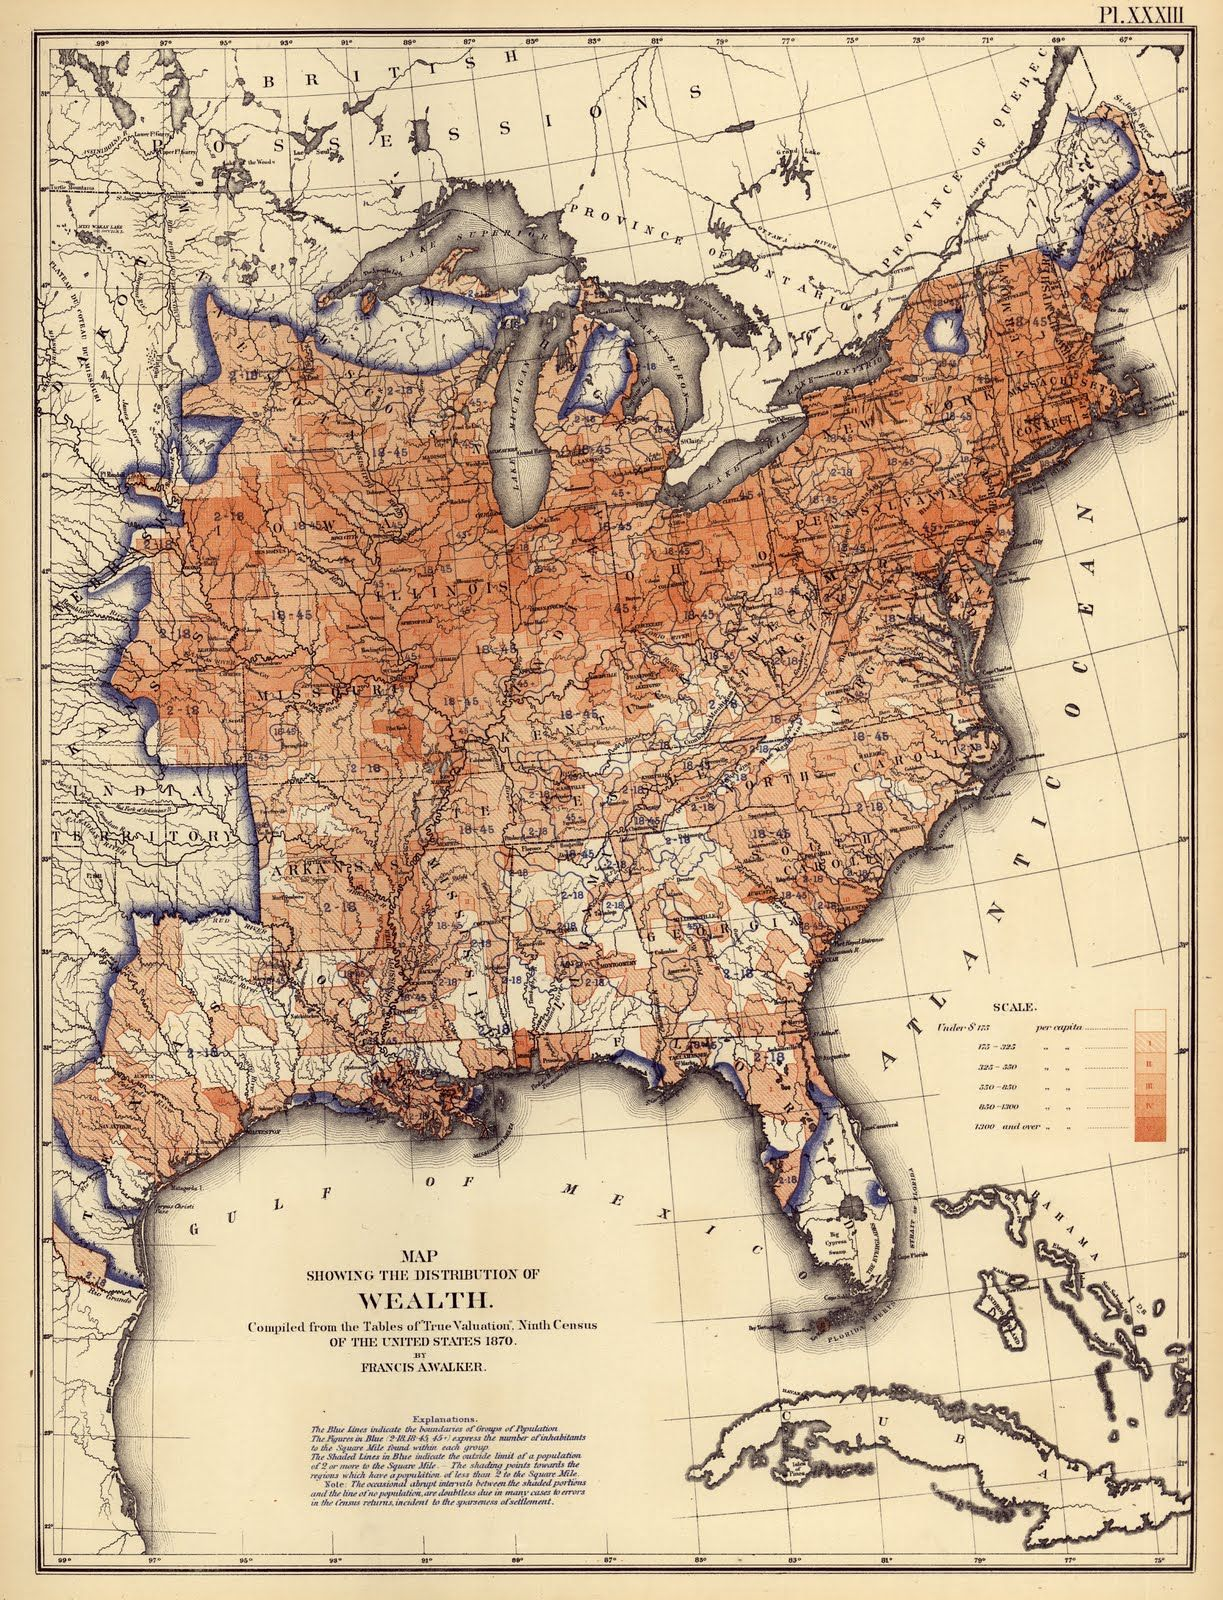 US Distribution of Wealth 1870 pretty well explains things as far